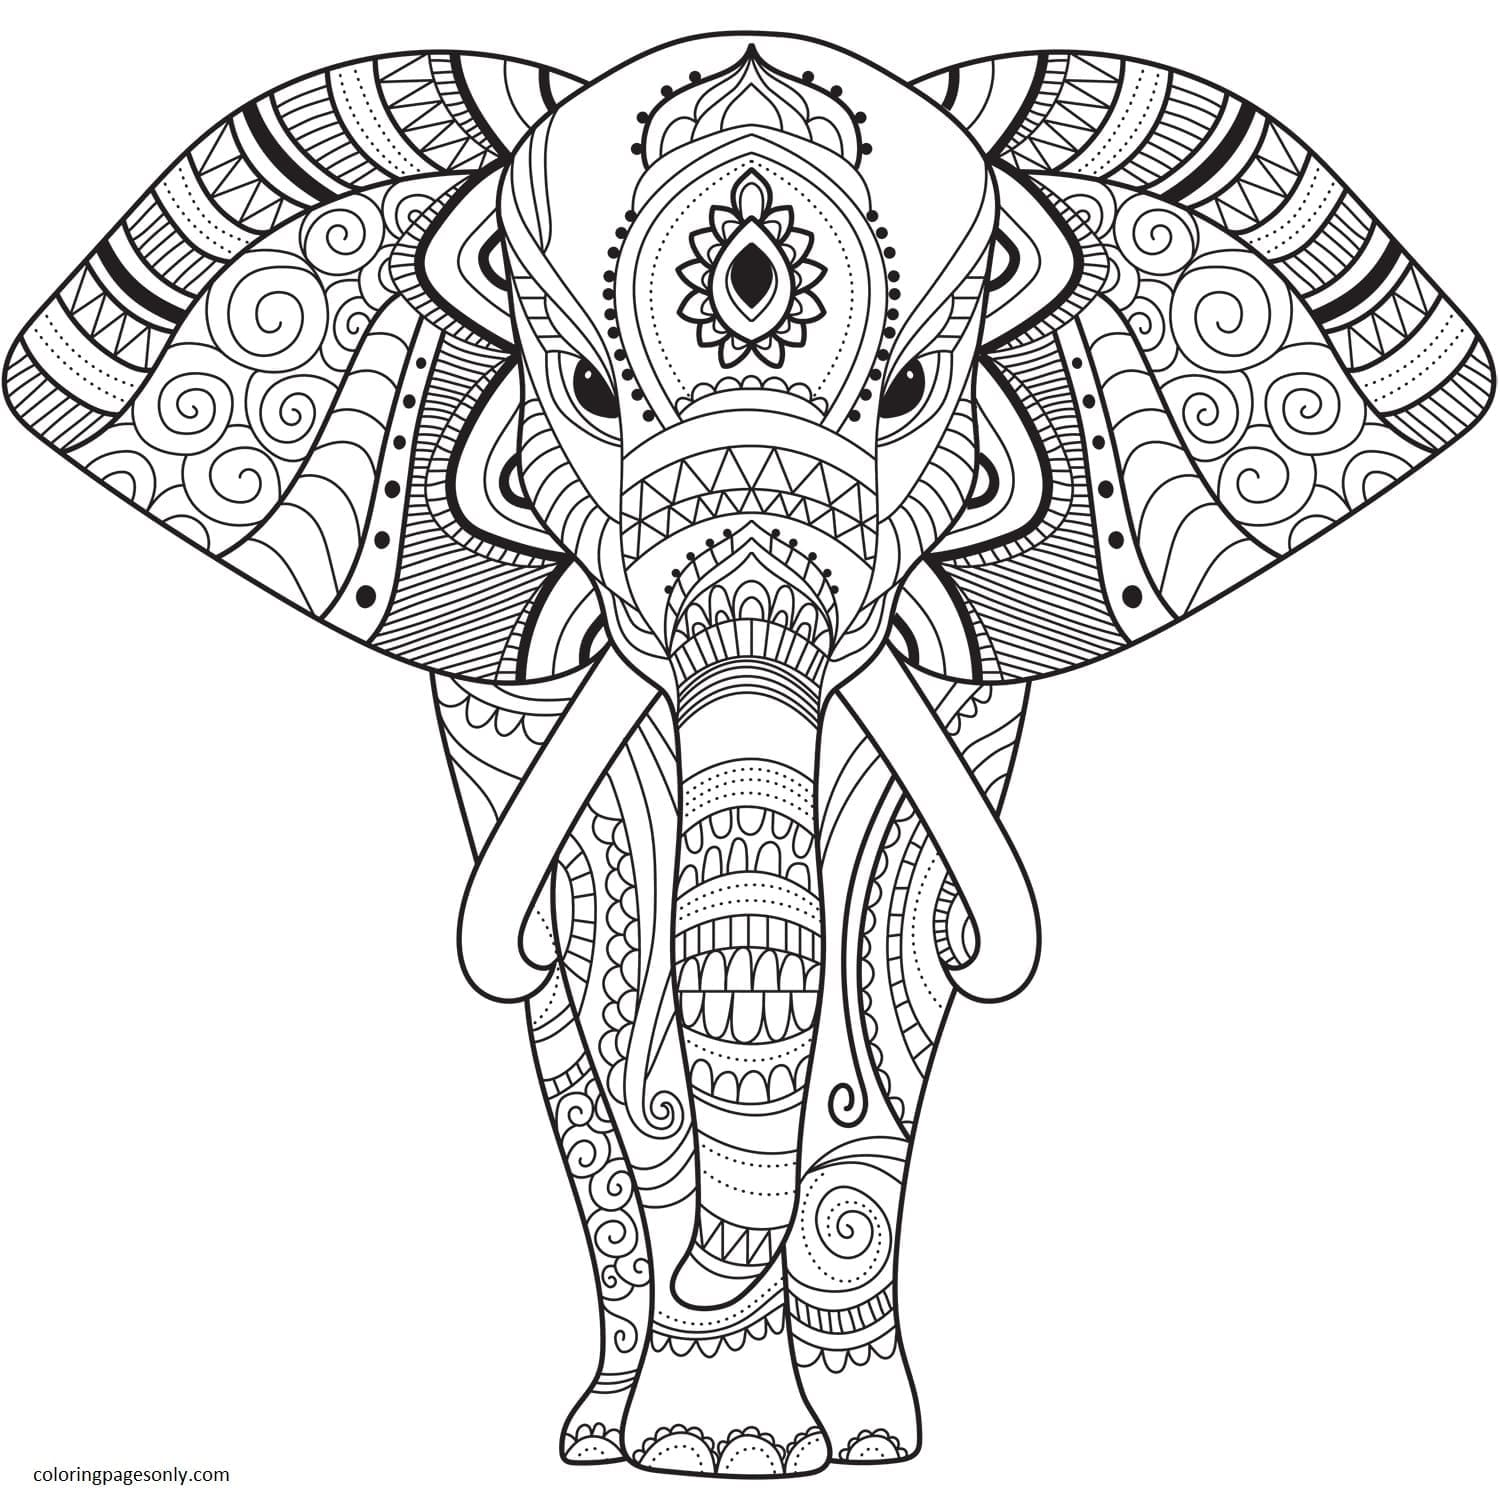 Zentangle Elephant Coloring Page